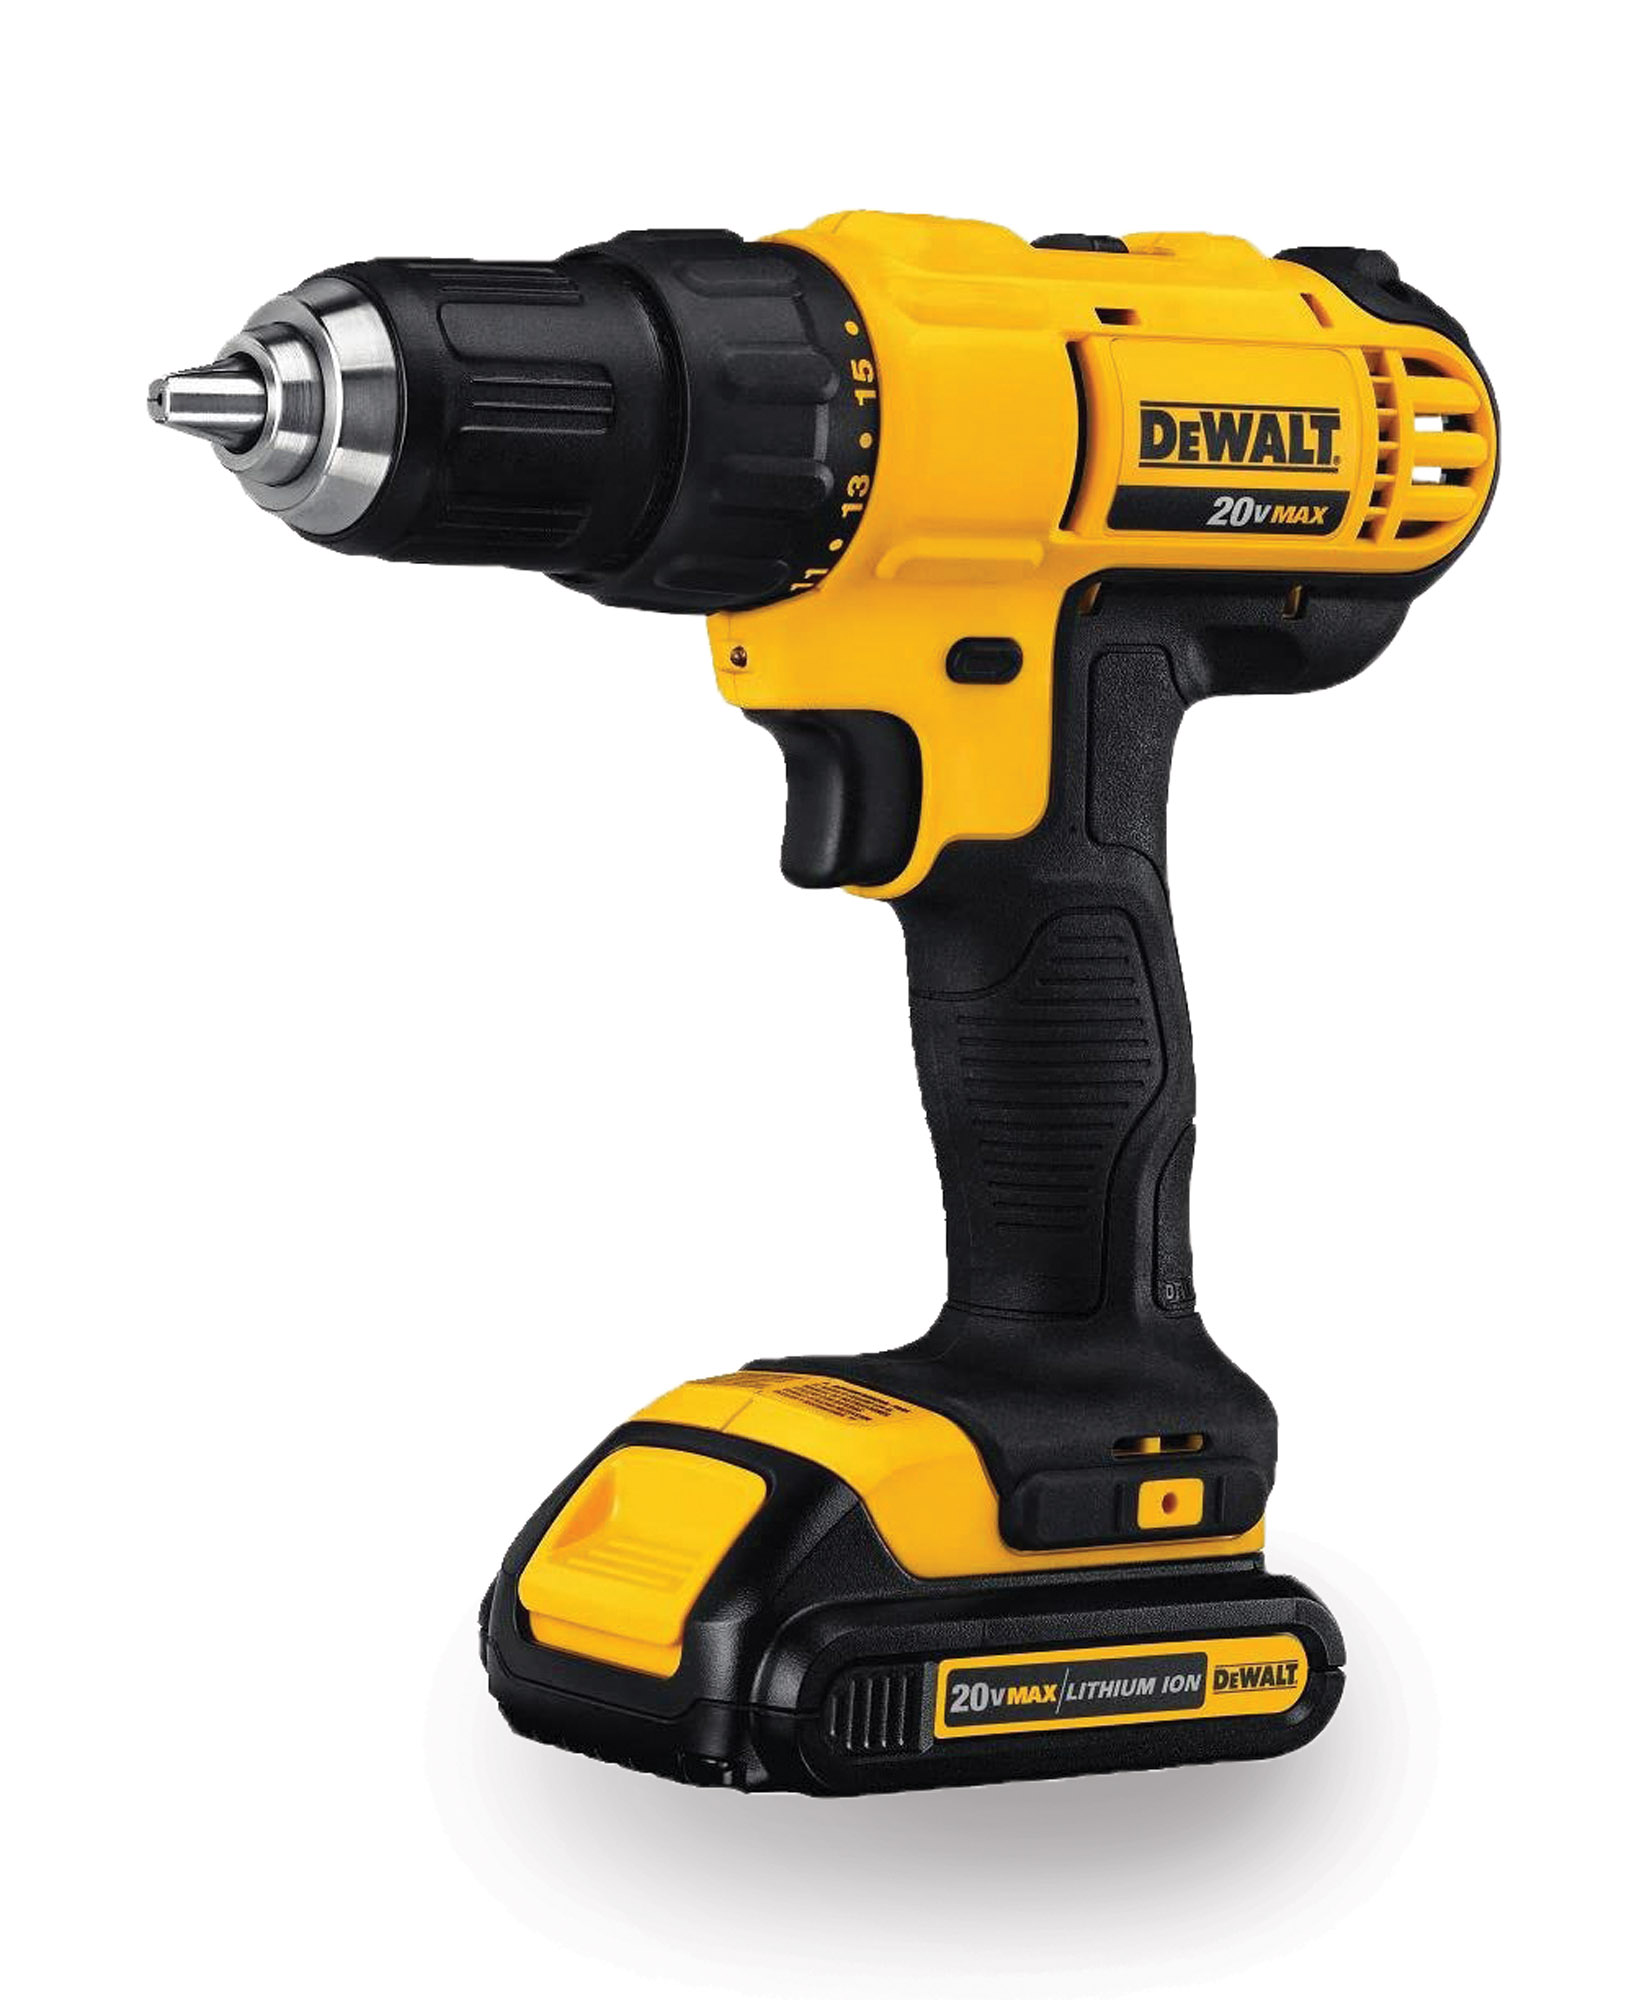 Remove and reinstall hinges, mount light fixtures, assemble furniture, and more with the 20V MAX cordless drill. Offering solid battery life and quick recharges, it operates at speeds up to 1,500 rpm and comes with a built-in task light. With a driver, charging base, and soft-sided carry bag. DeWalt, (800) 433-9258, dewalt.com